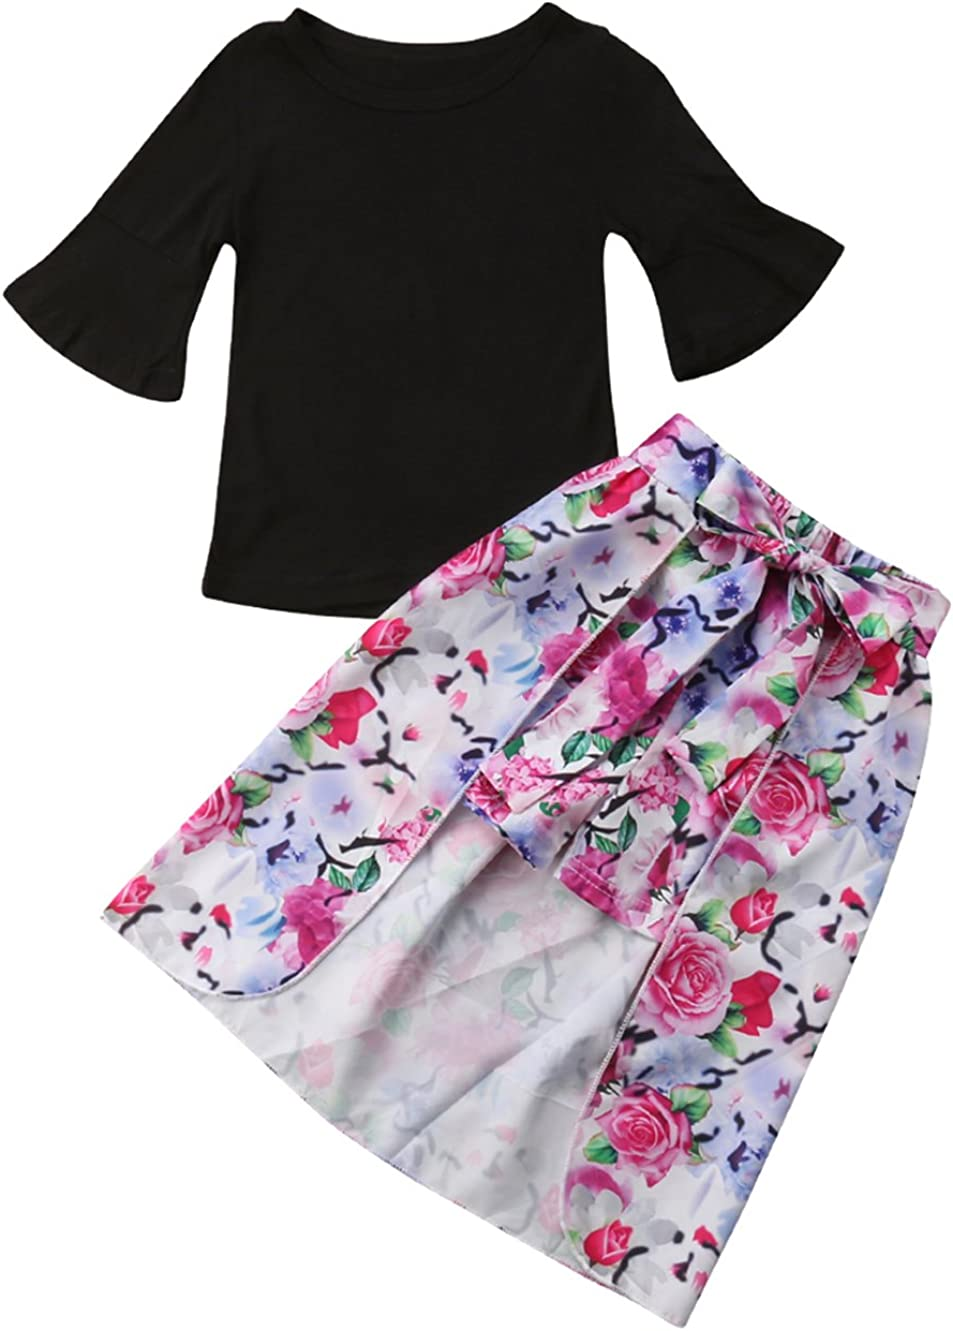 Baby Girls Black T-Shirt Tops,Baby Girls Floral Shorts and Cloak Clothes Set 3pcs 1-7 Years Toddler Girls Outfit Set